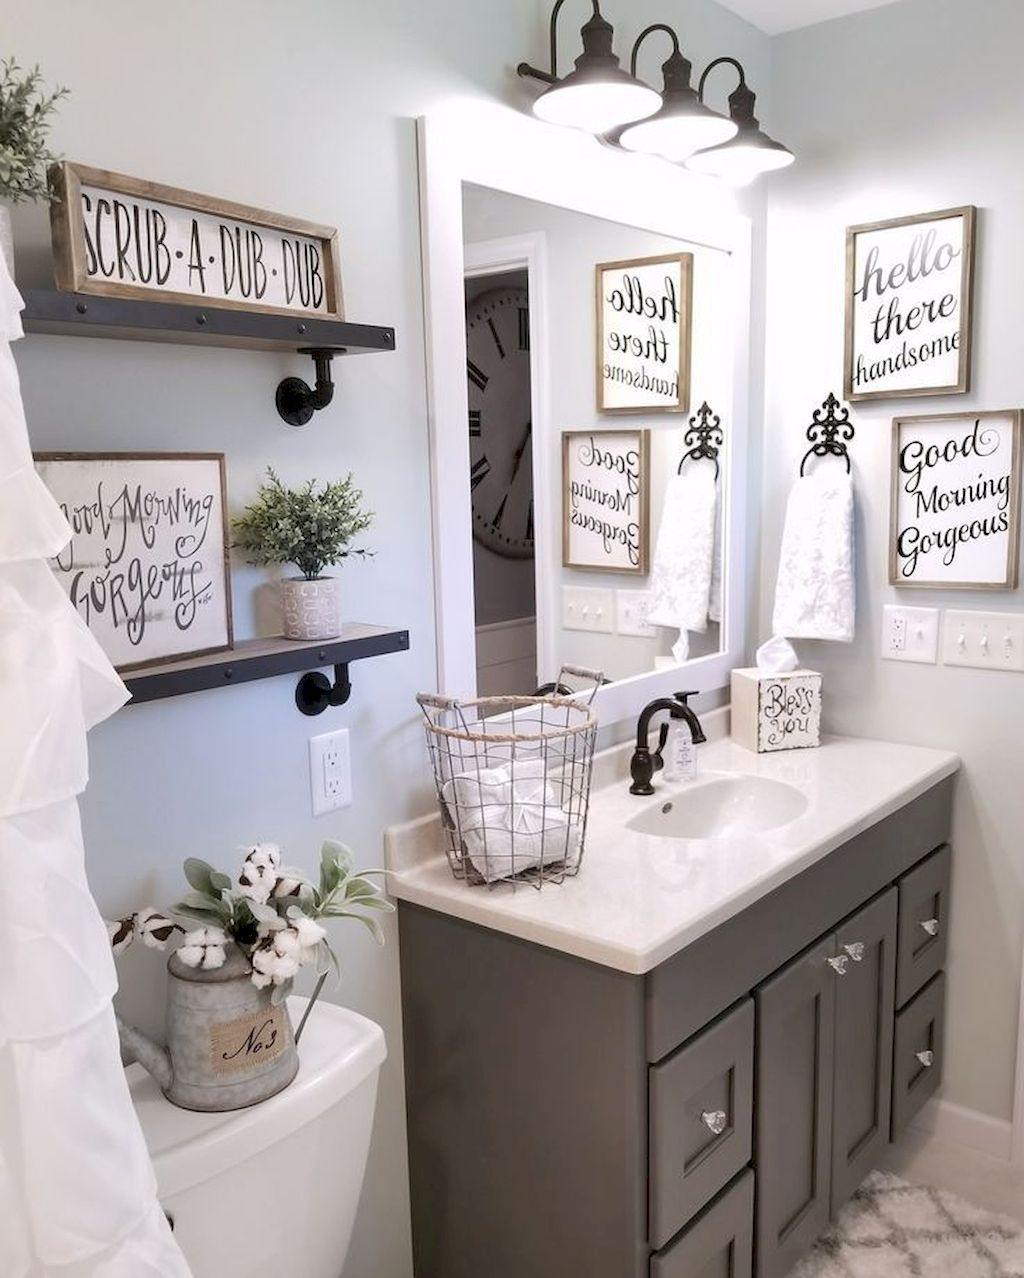 110 Fabulous Farmhouse Bathroom Decor Ideas | Home ...